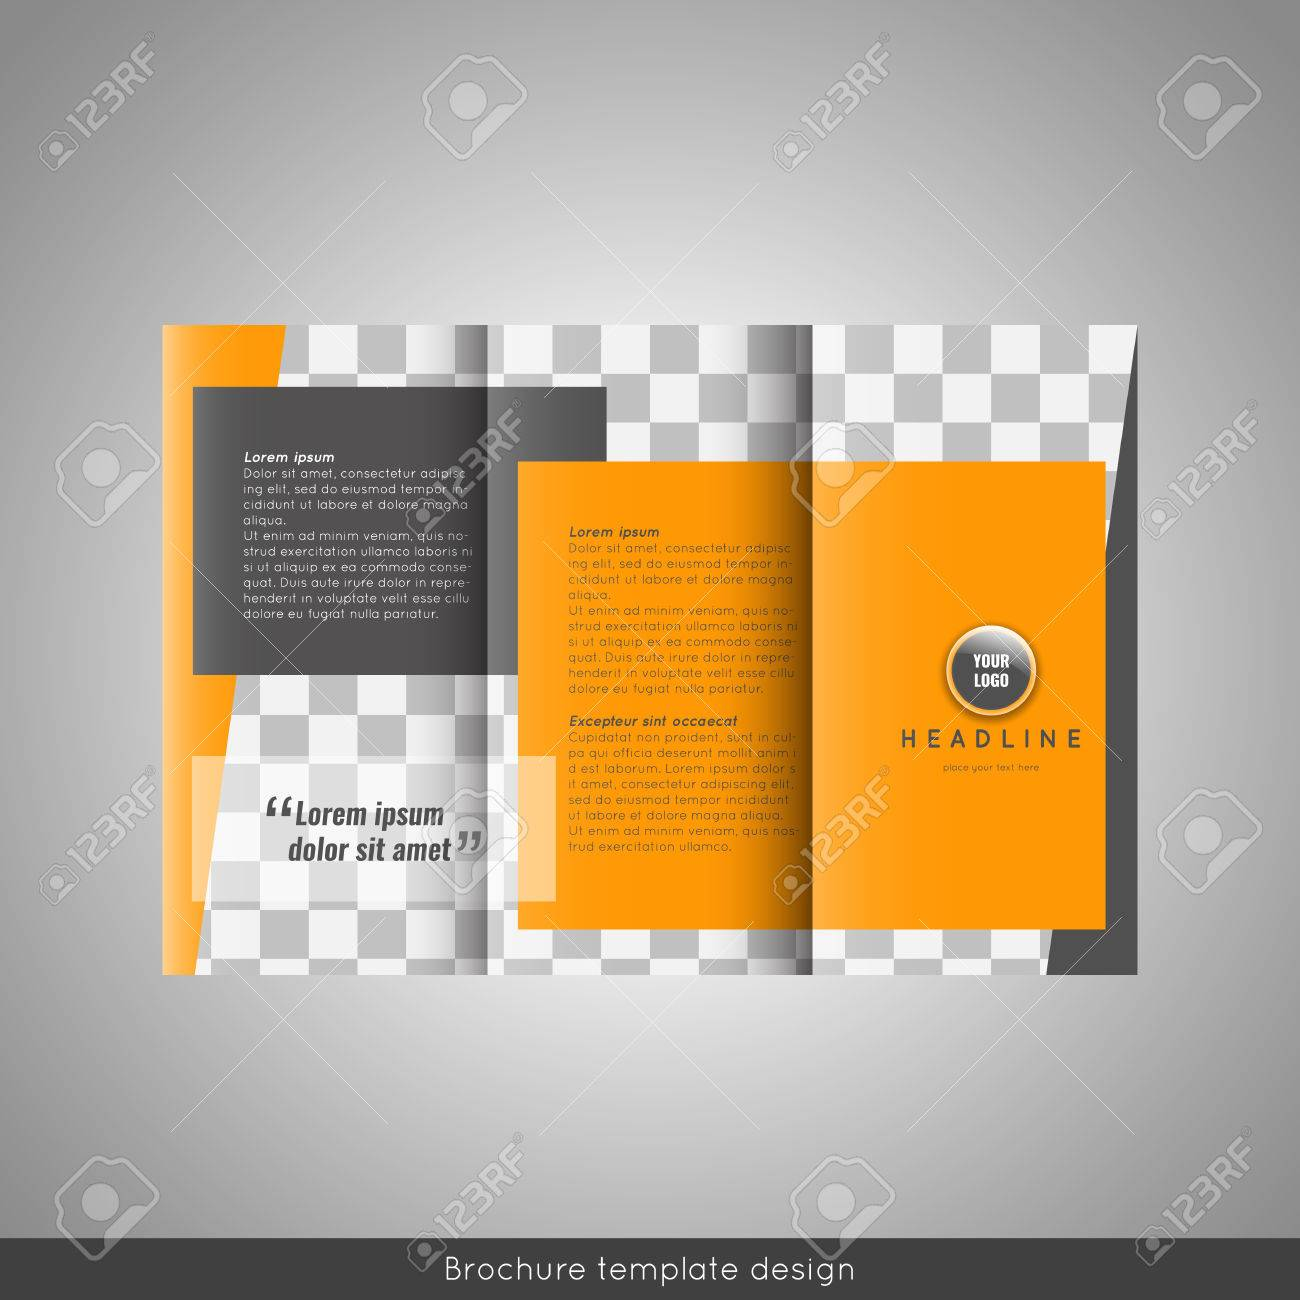 Trifold Business Brochure Template Design Royalty Free Cliparts